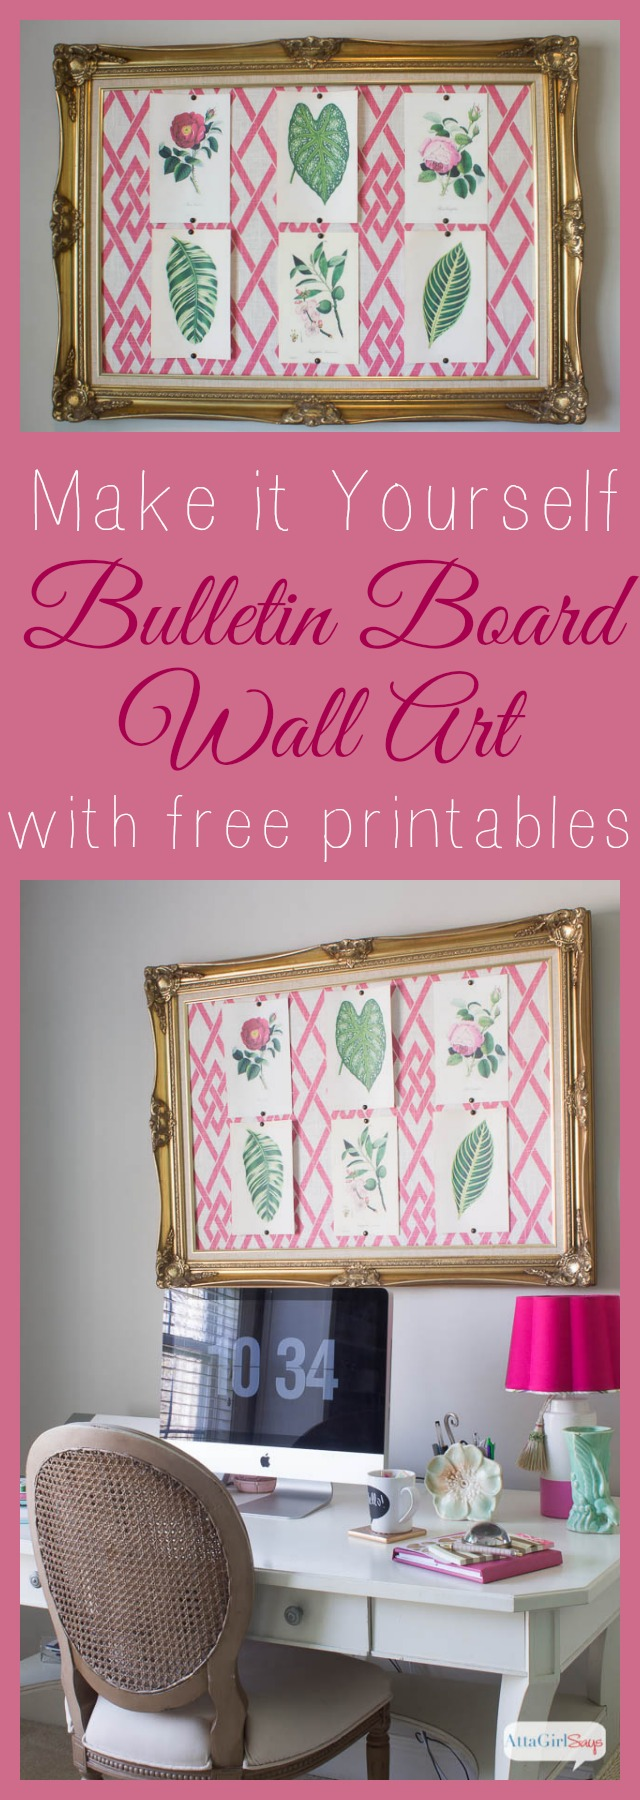 DIY Bulletin Board & Cheap Wall Art Using Free Printables